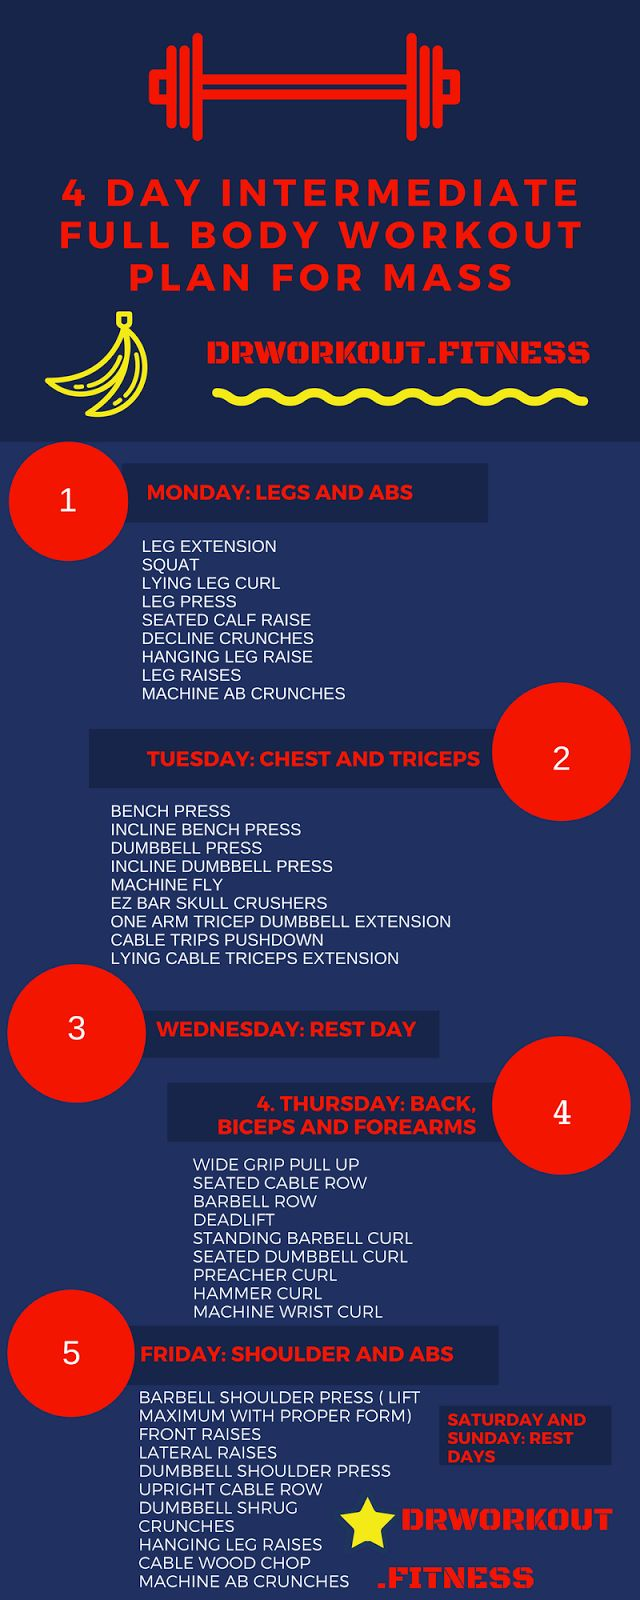 4 Day Intermediate Full Body Workout Plan for Mass #bodybuilding #fitness #gym #intermediate #mass #workoutplan #workoutroutine #life #health #lifestyle #fit #fitness #beast #beastmode #training #life #lifestyle #infographic #men